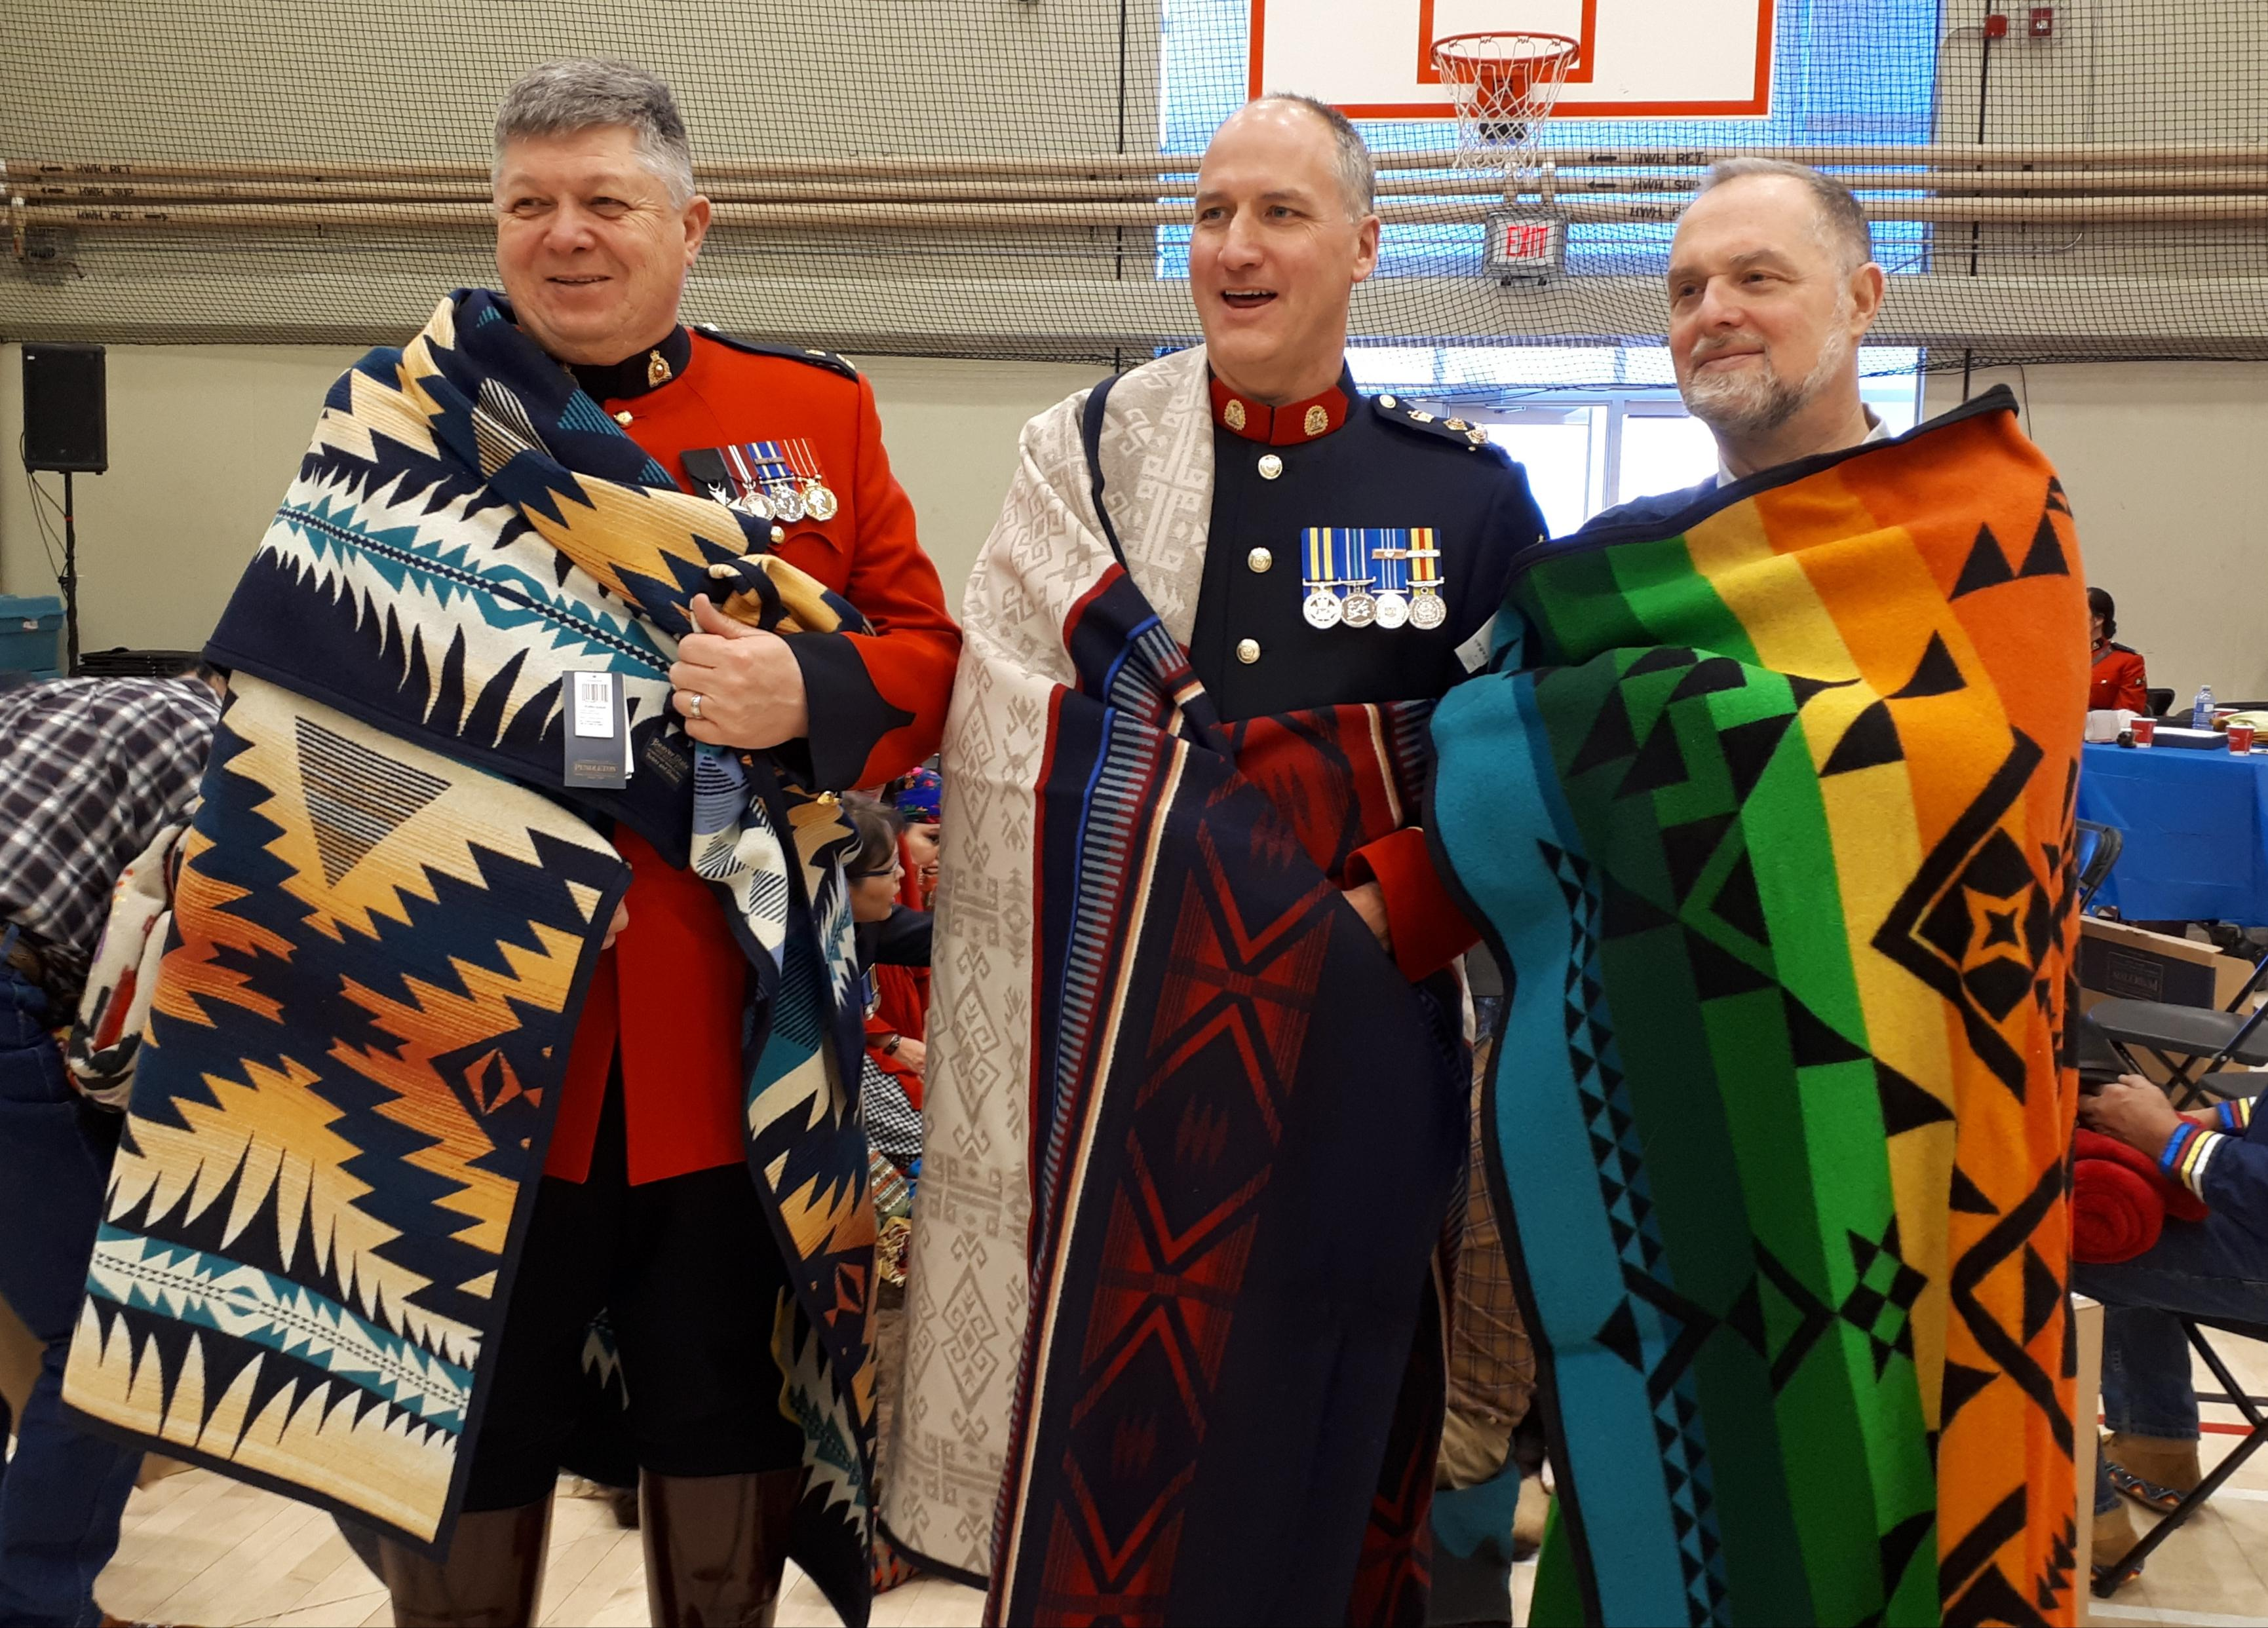 Earl Nini, Steve Barlow and Michael Gottheil with Pendleton Blankets.